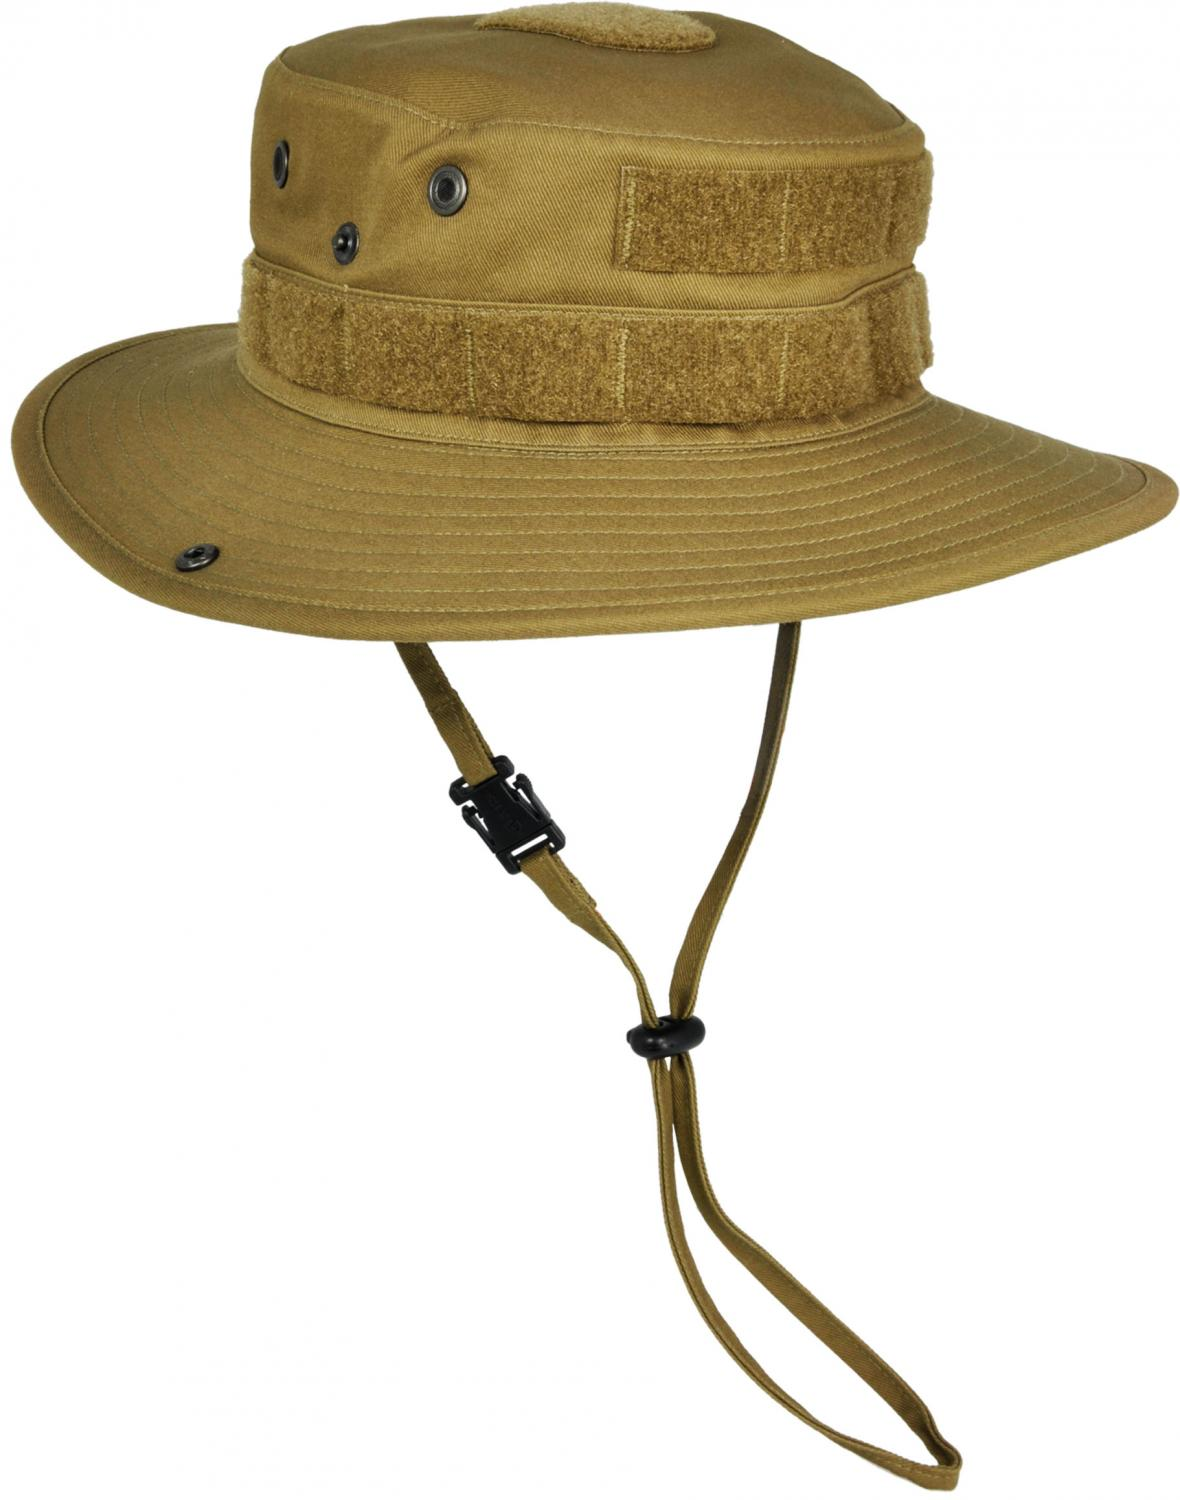 Hazard 4 SunTac Cotton Boonie Hat with MOLLE, Coyote, Regular 7.25 inch